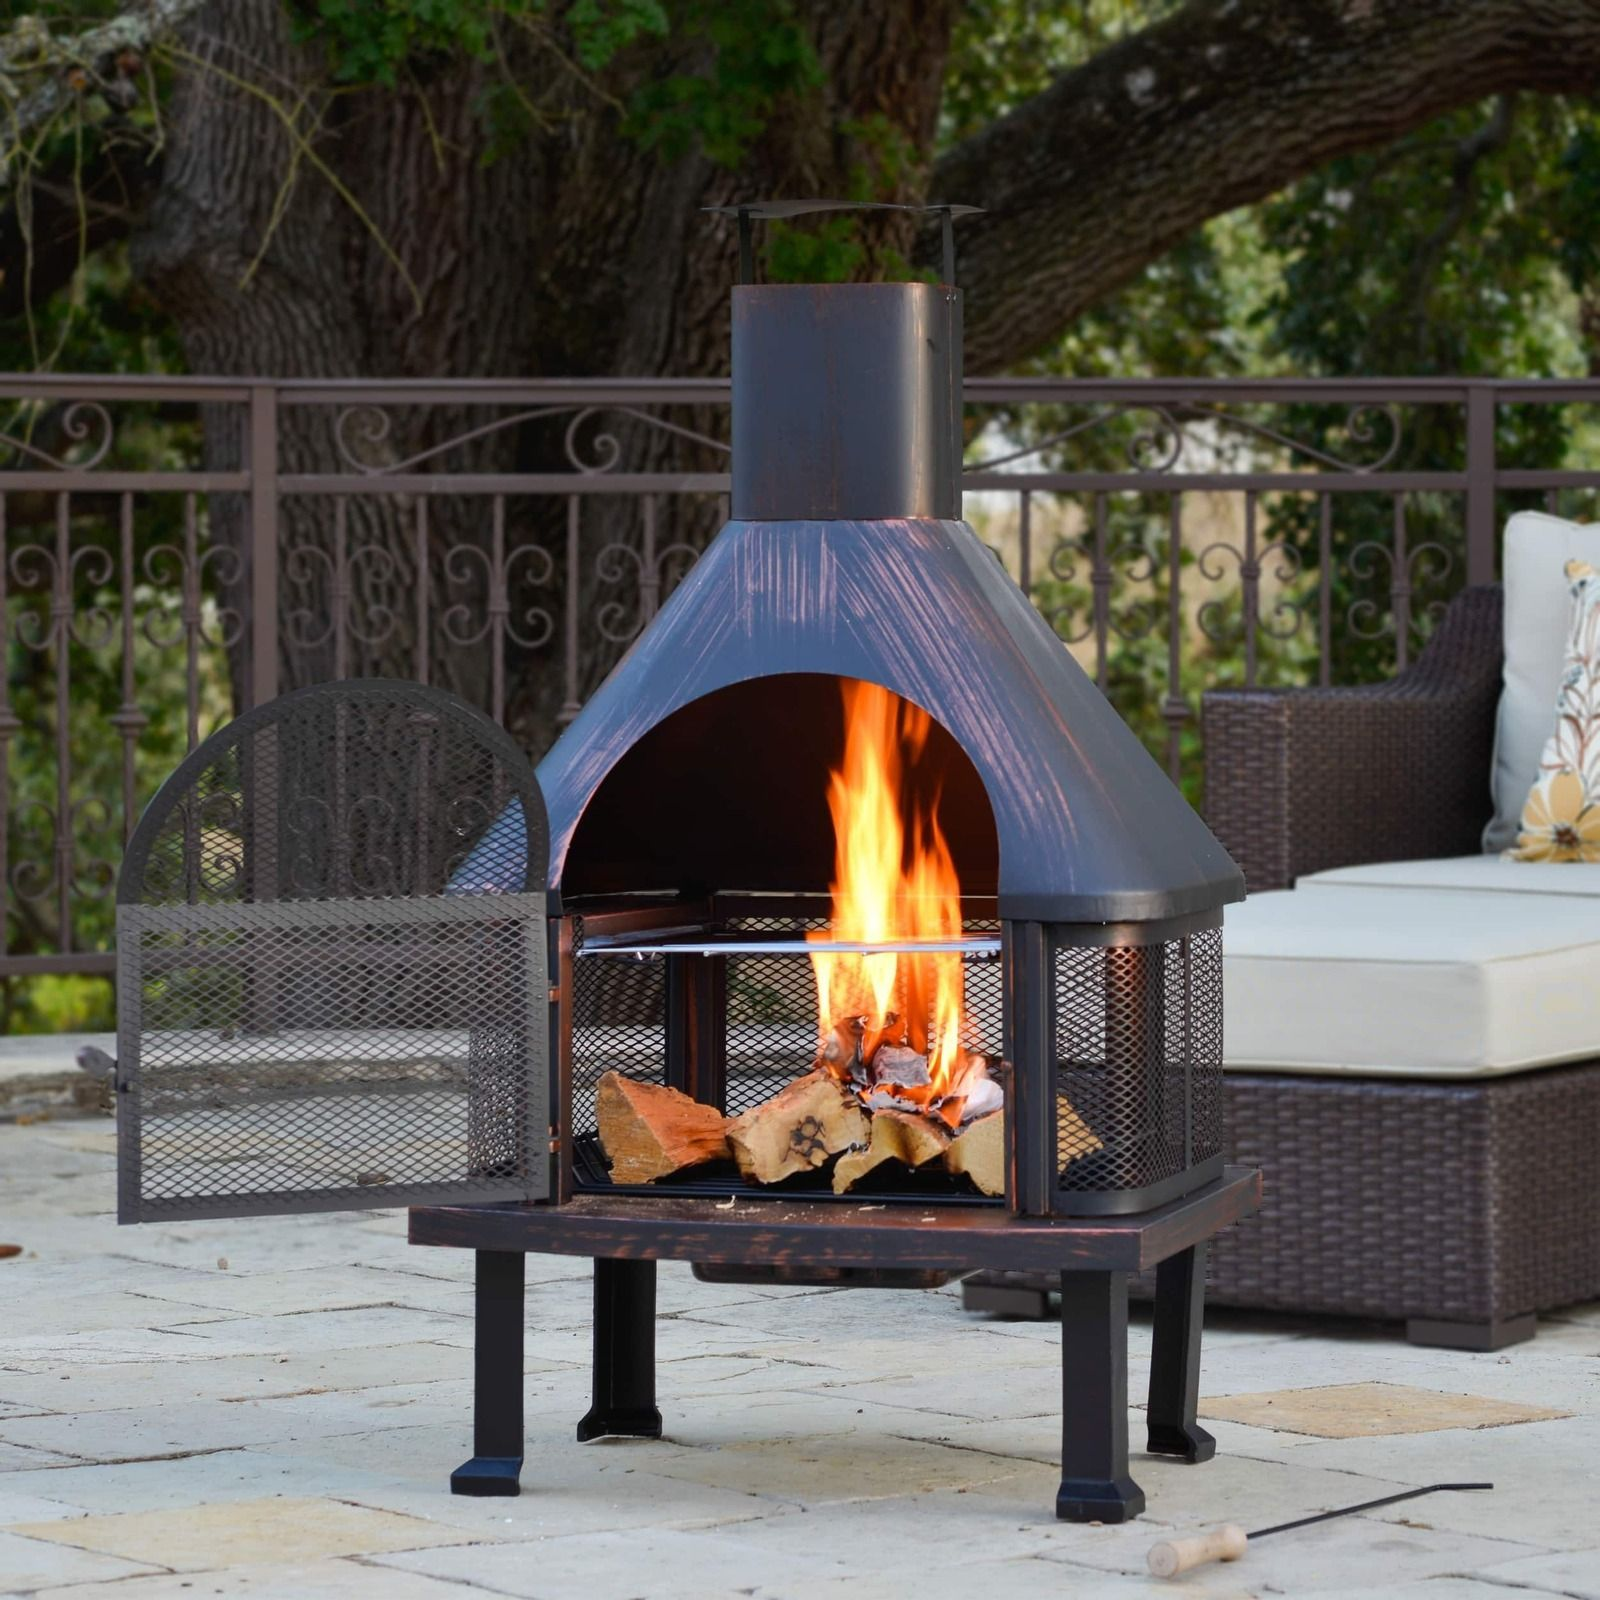 Want To Build Your Own Fire Pit We Have Compiled